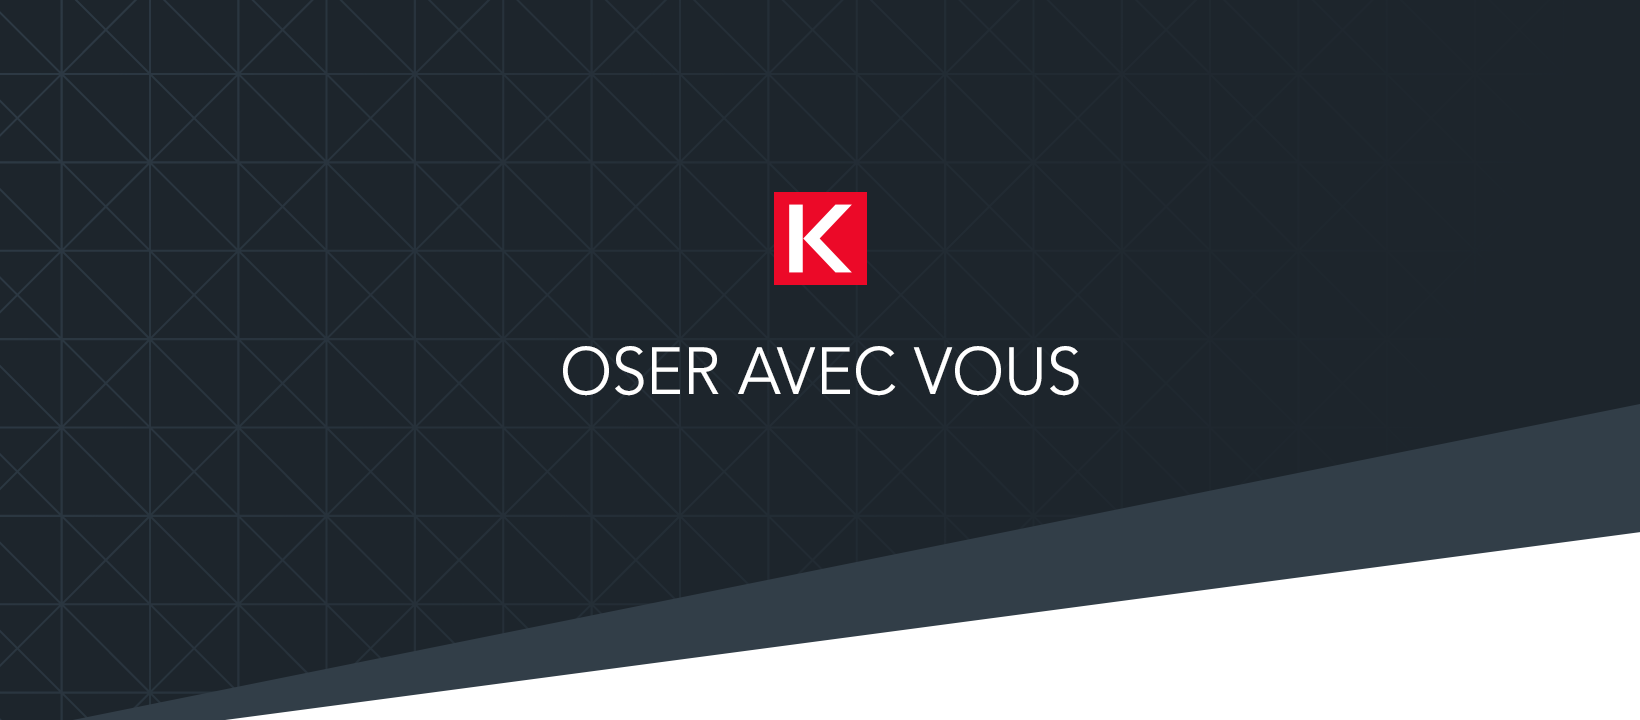 Adjointe administrative - Technicienne comptable - King Communications